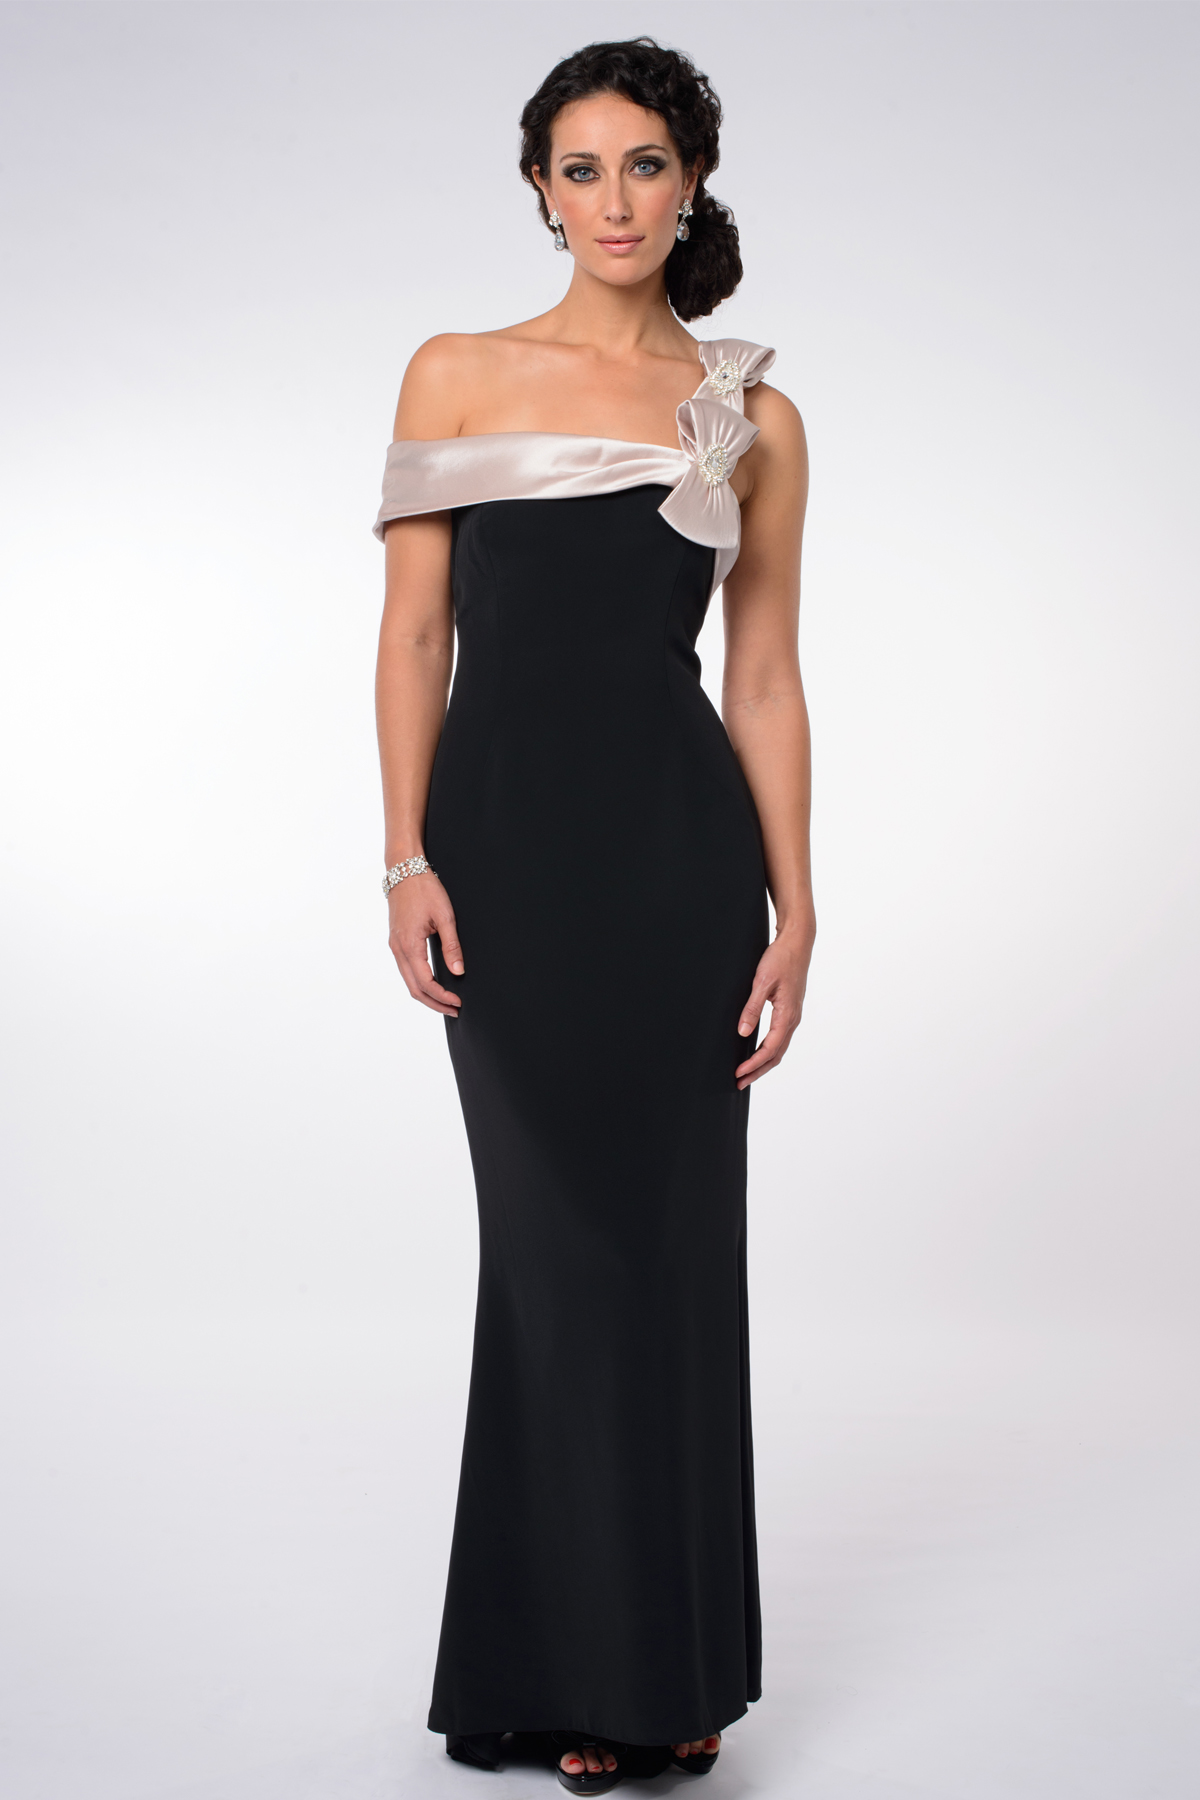 The right dress? Archives - Page 2 of 3 - Evening dresses | Mother ...